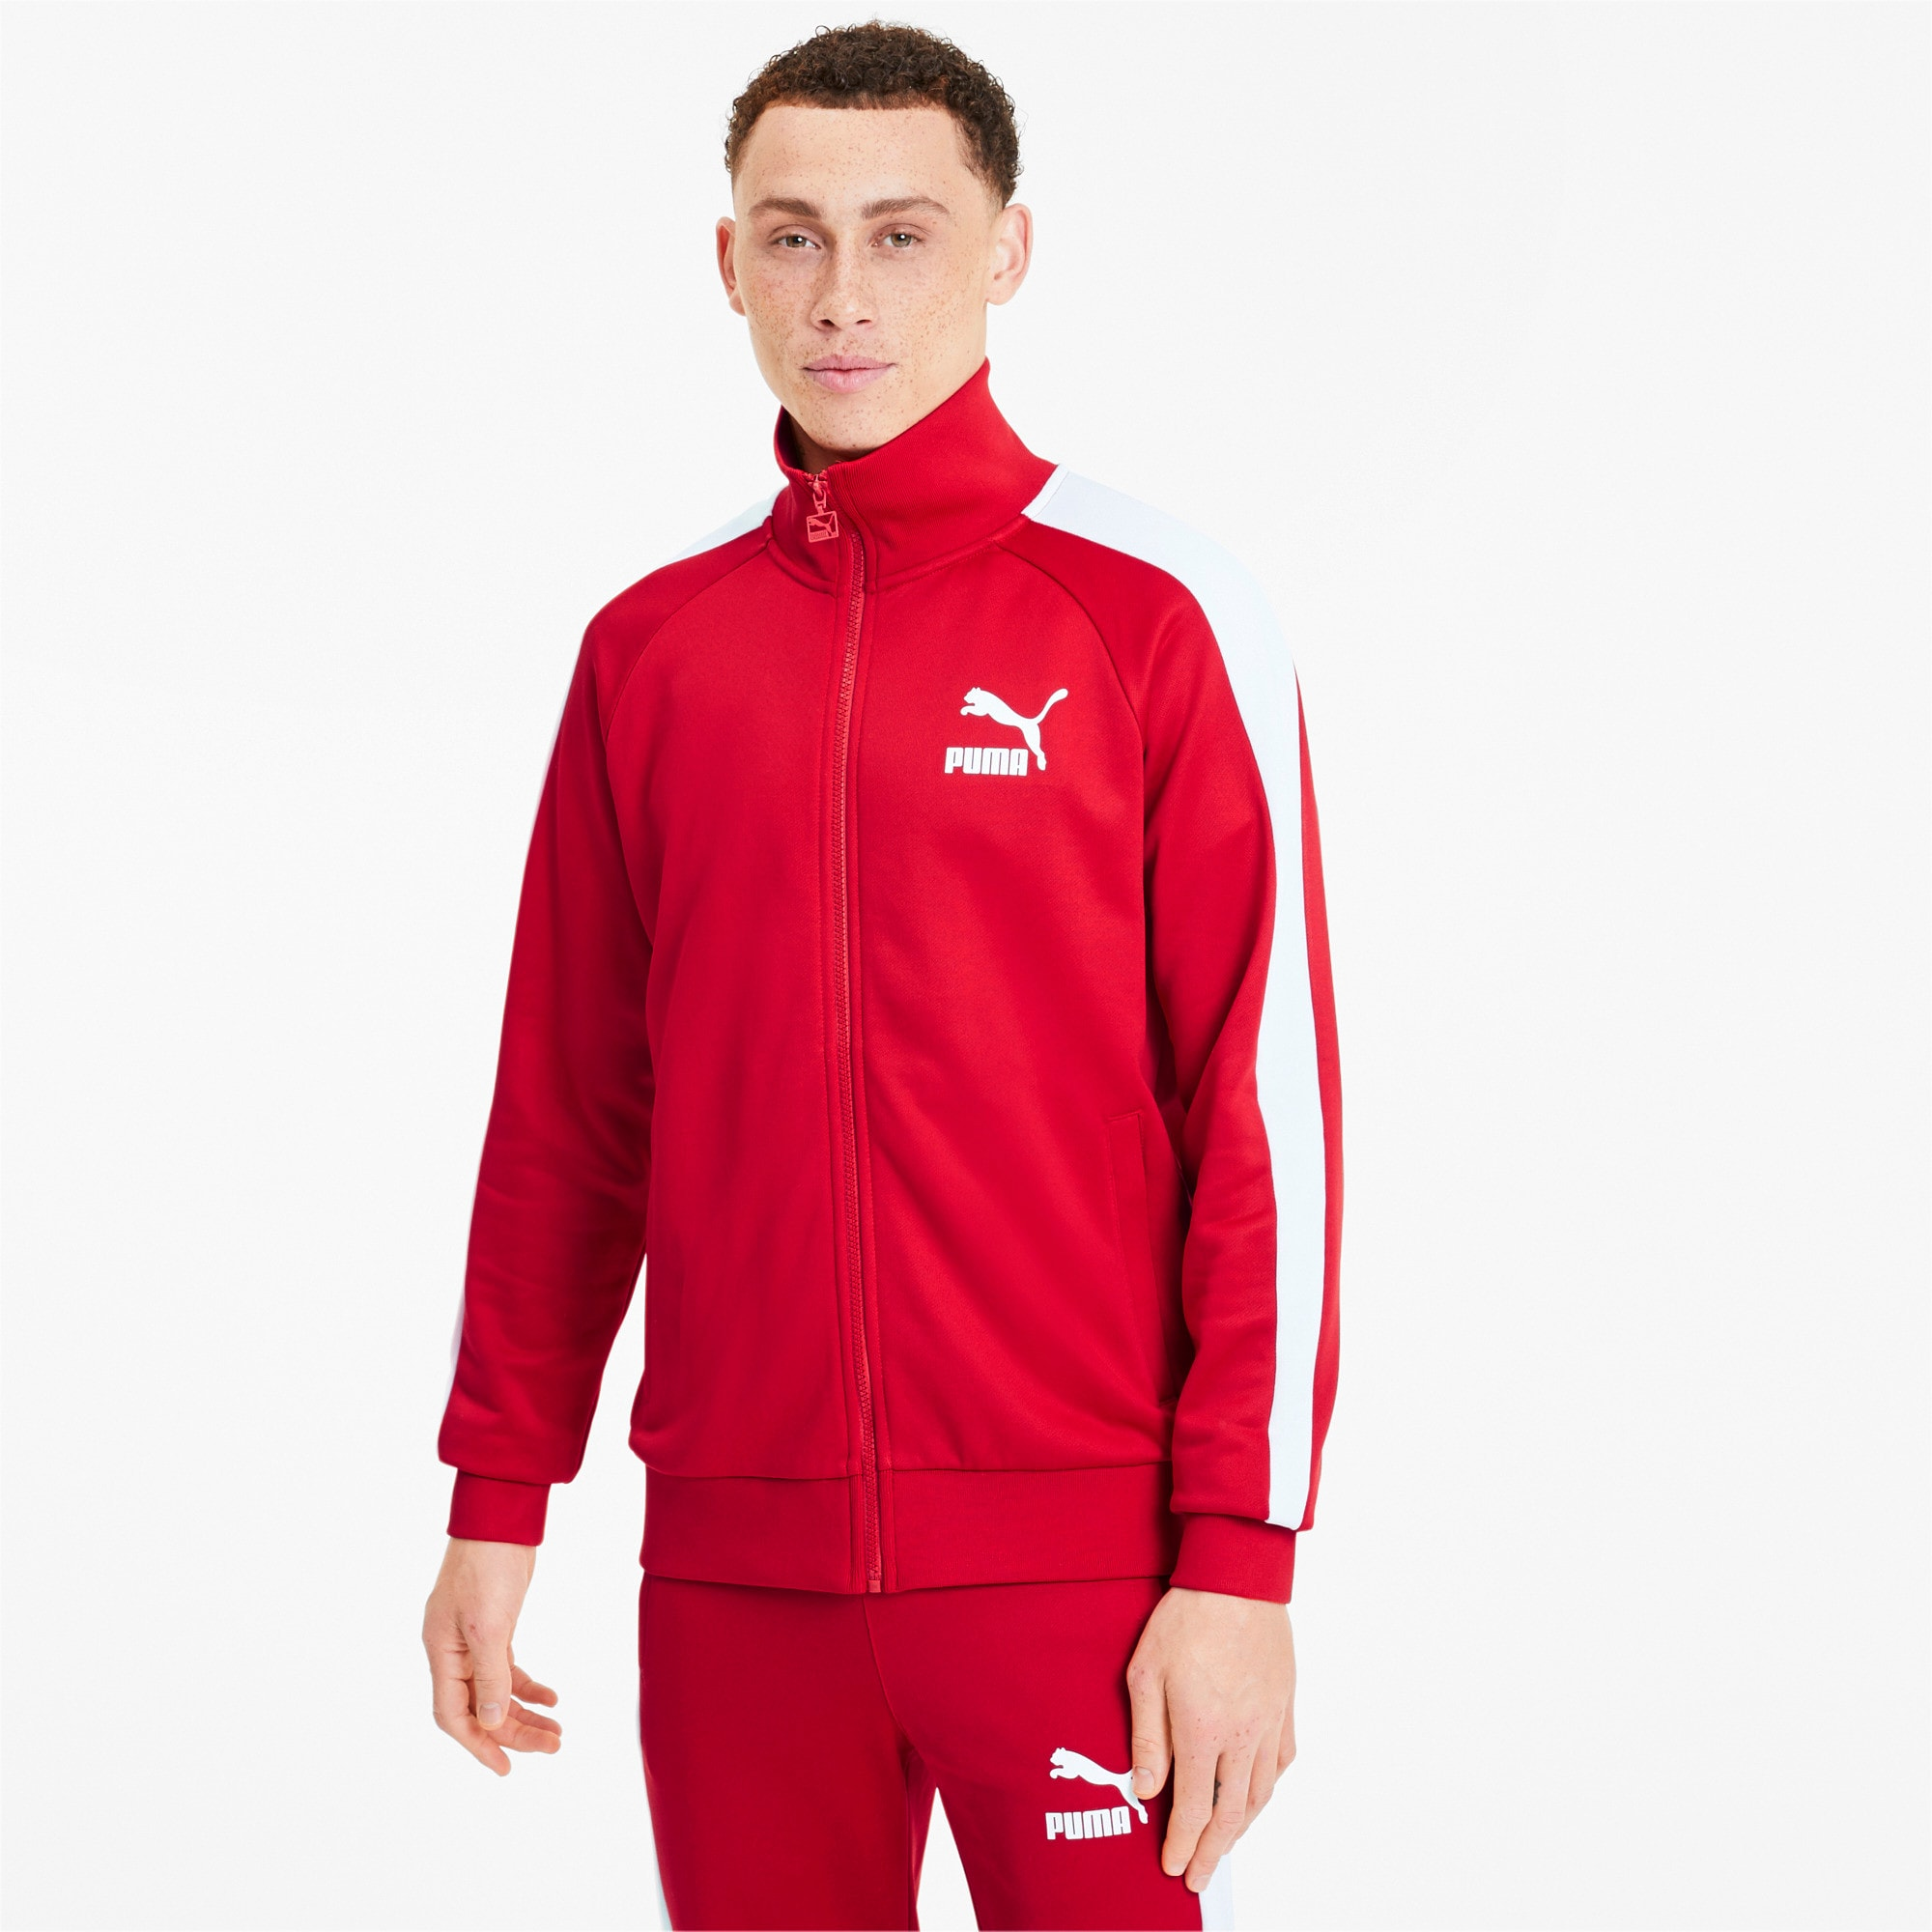 Thumbnail 1 of Iconic T7 Men's Track Jacket, High Risk Red, medium